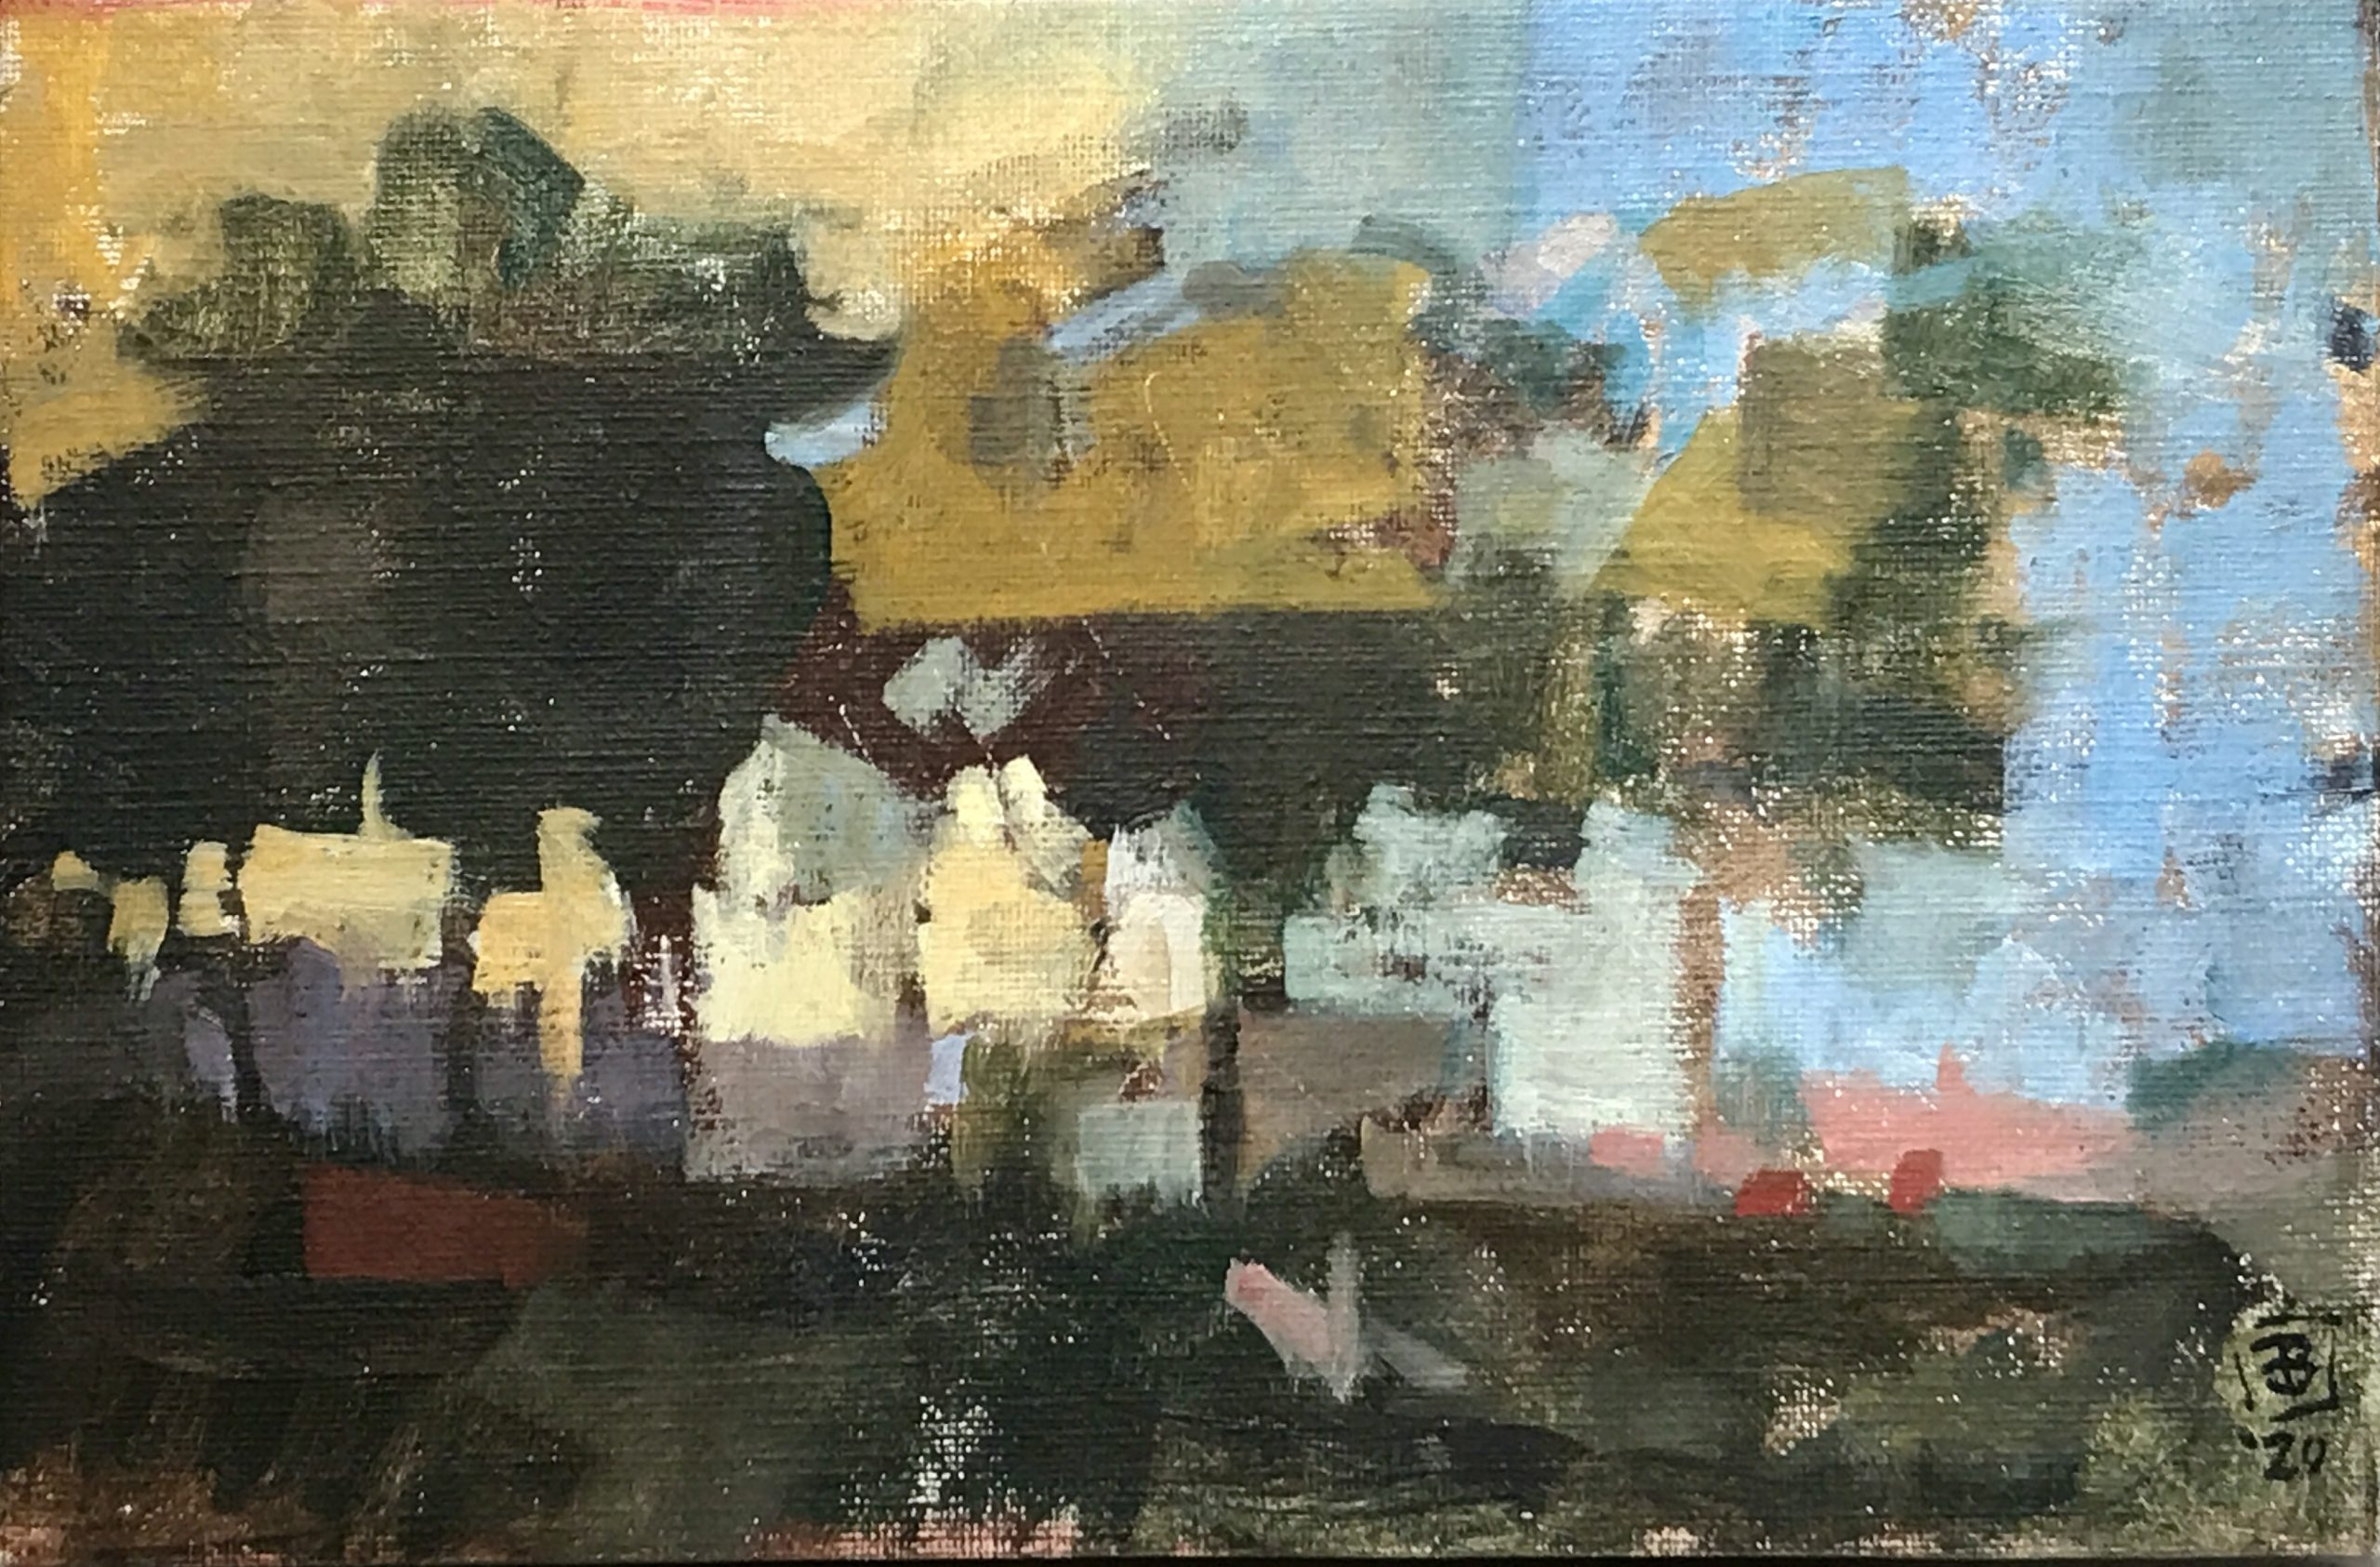 """James Bland - 2020 - Study After Turner - Oil on Canvas - 12"""" x 8.5"""""""